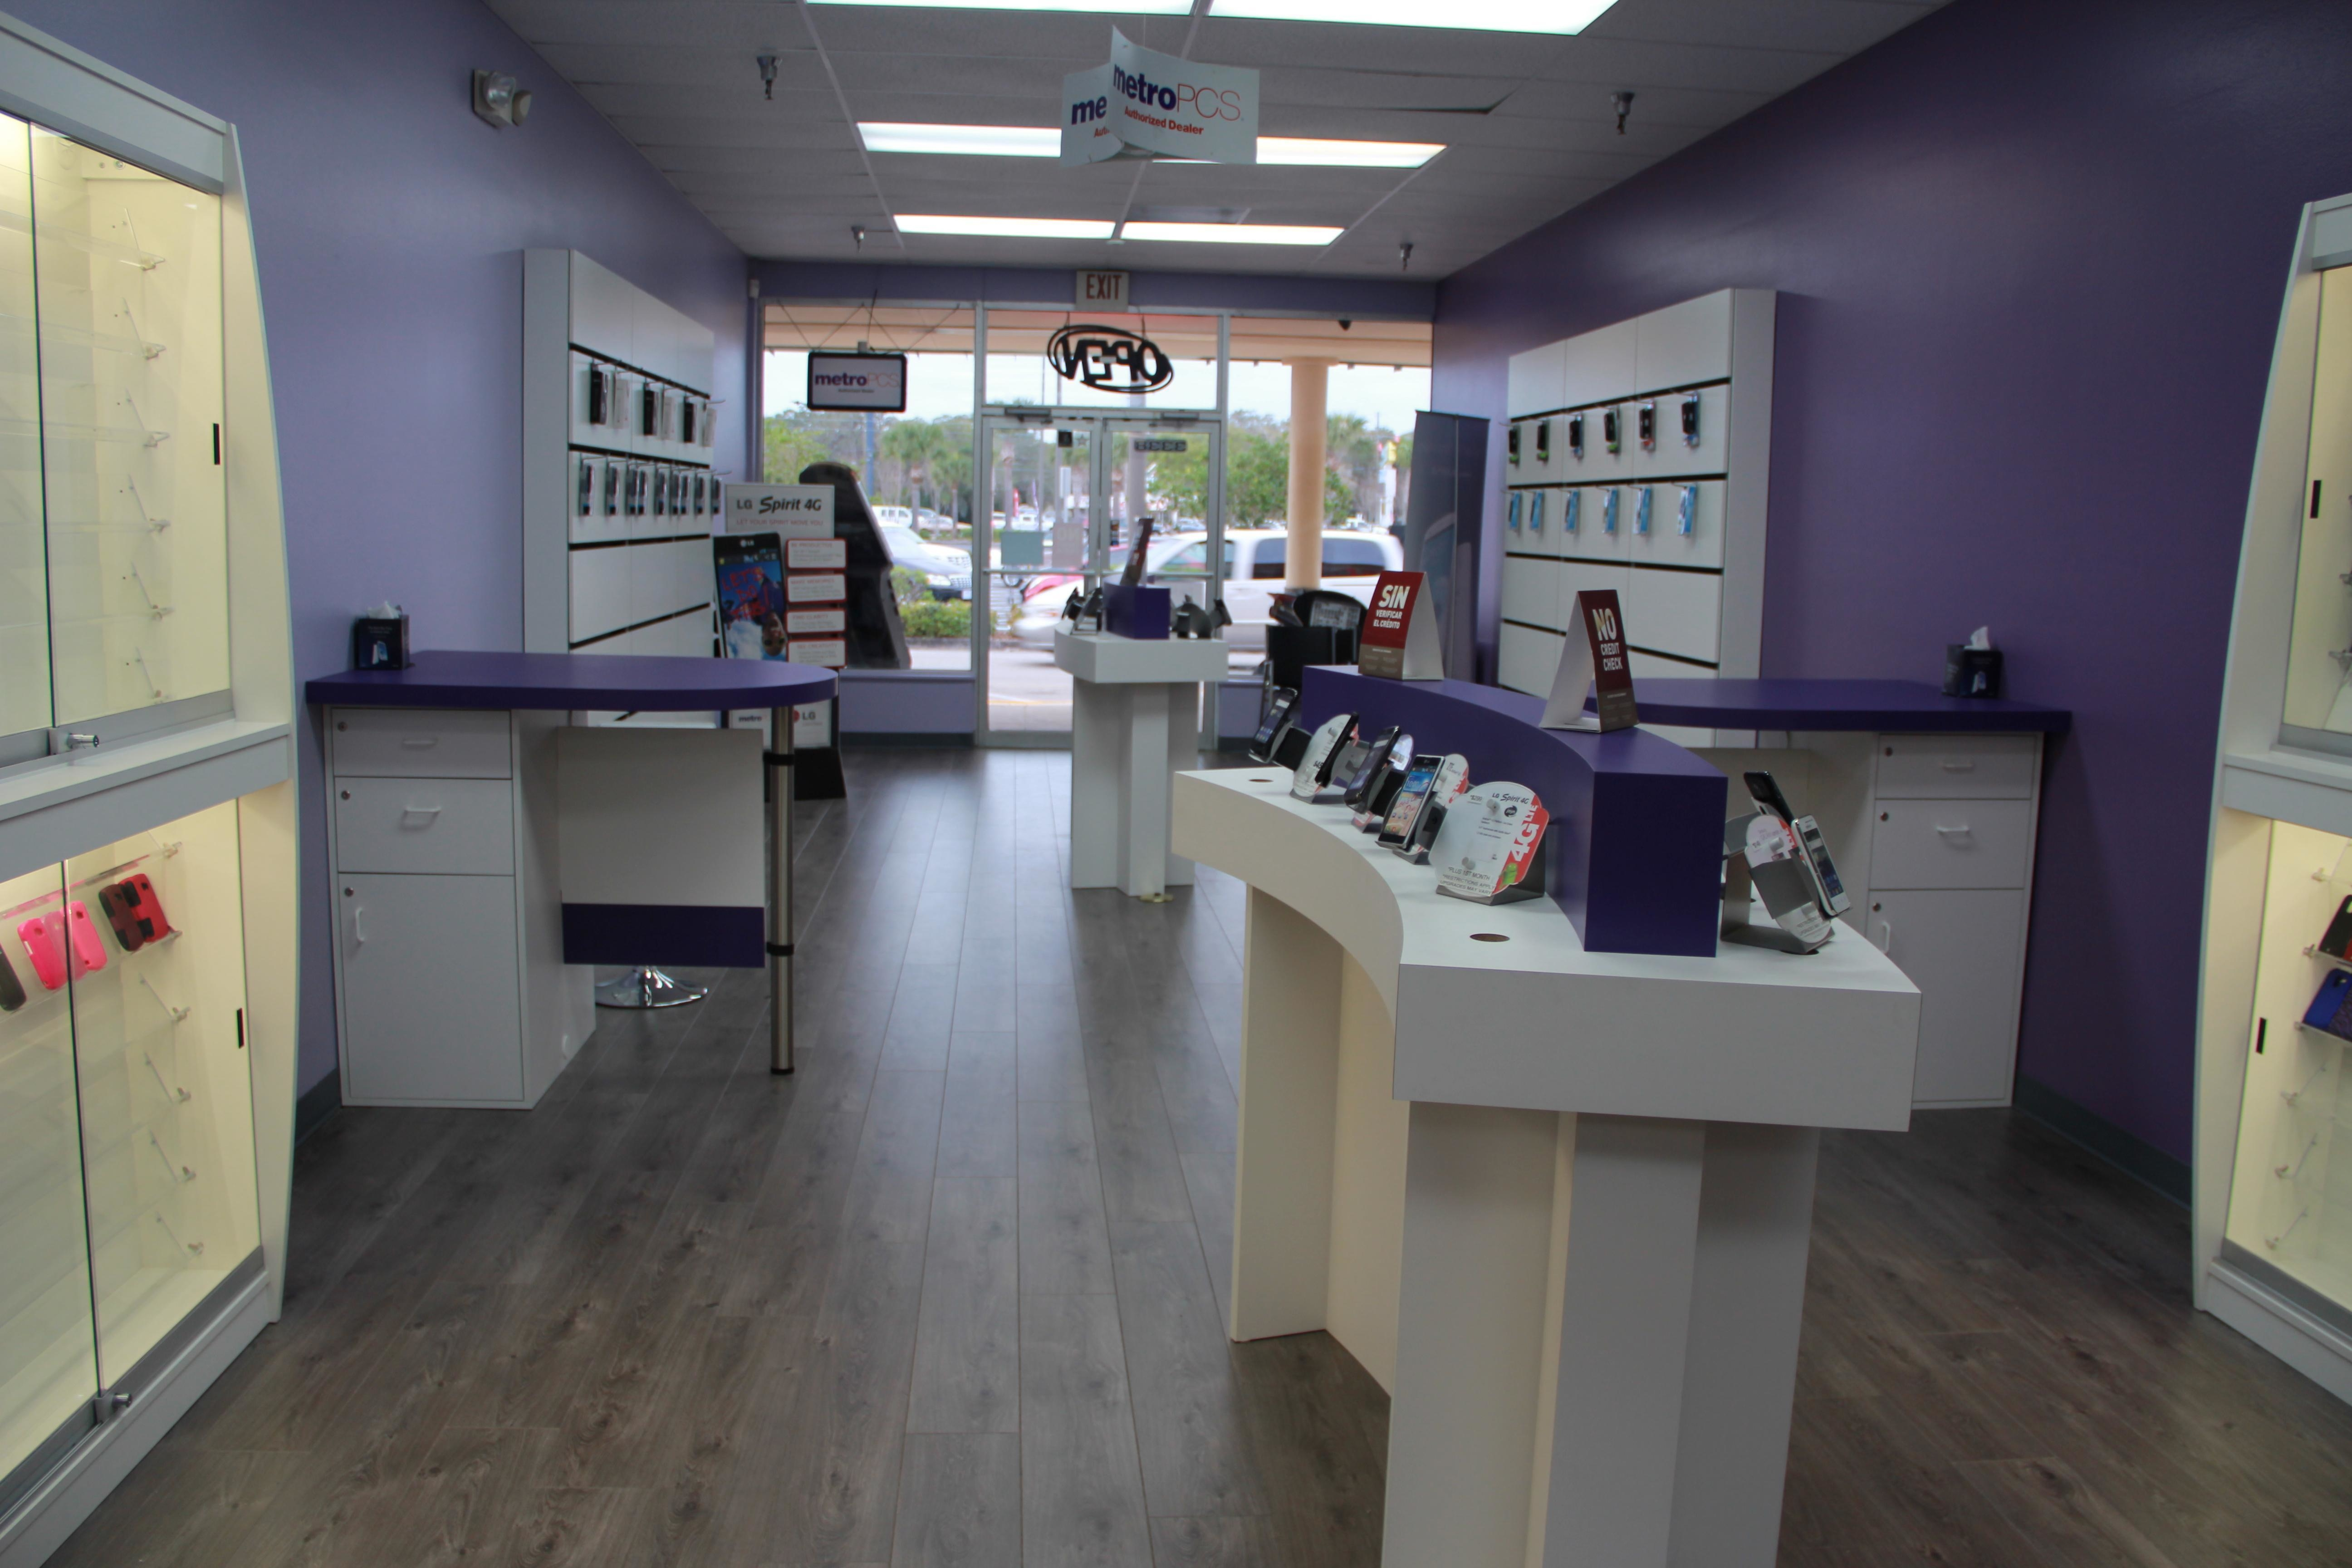 Metro PCS Store Locations in Houston. If you want to save money on your phone bill you should look for Metro PCS store locations in Houston. Economic times are challenging and many households are eager to save money where they can. Switching to a smaller carrier is .